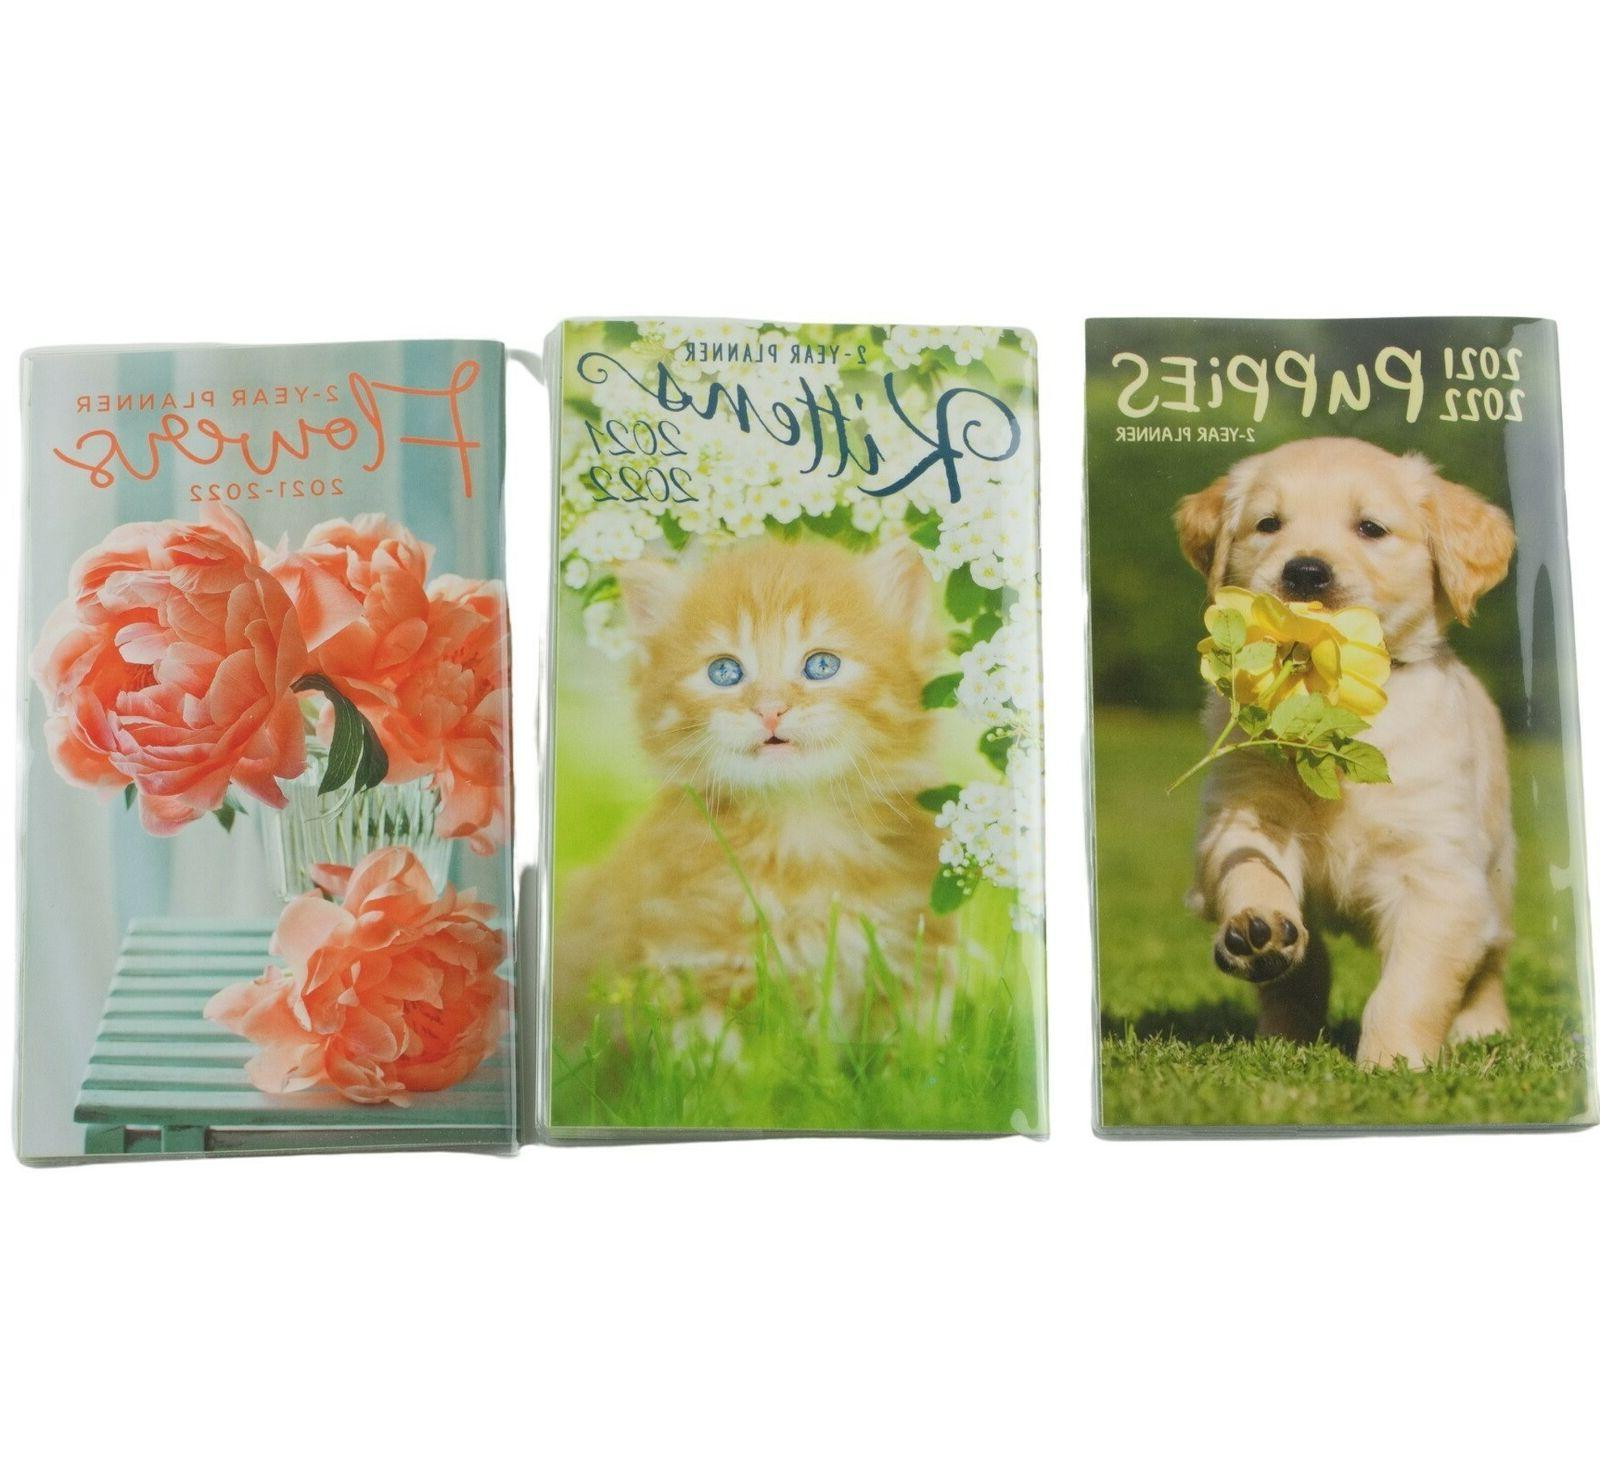 kittens cats puppies dogs flowers 2021 2022